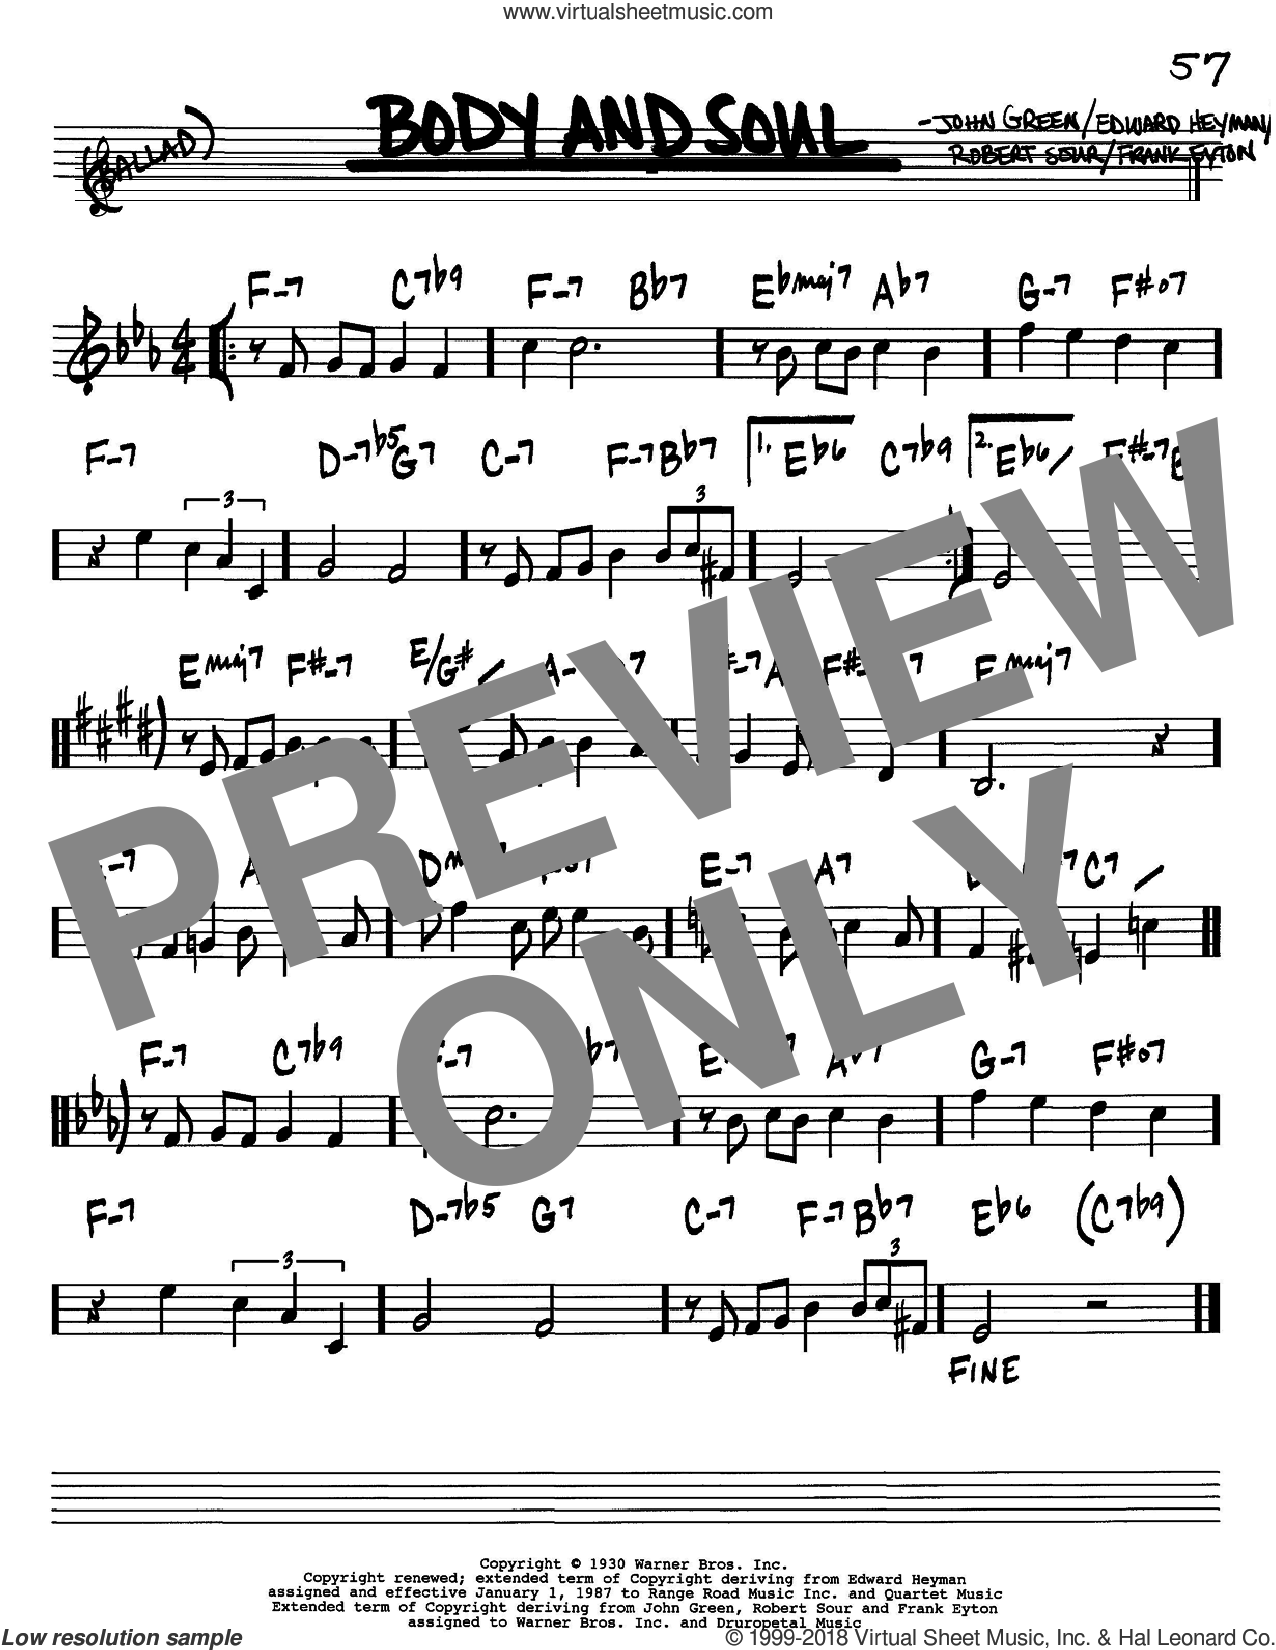 Body And Soul sheet music for voice and other instruments (Bb) by Robert Sour, Edward Heyman, Frank Eyton and Johnny Green. Score Image Preview.